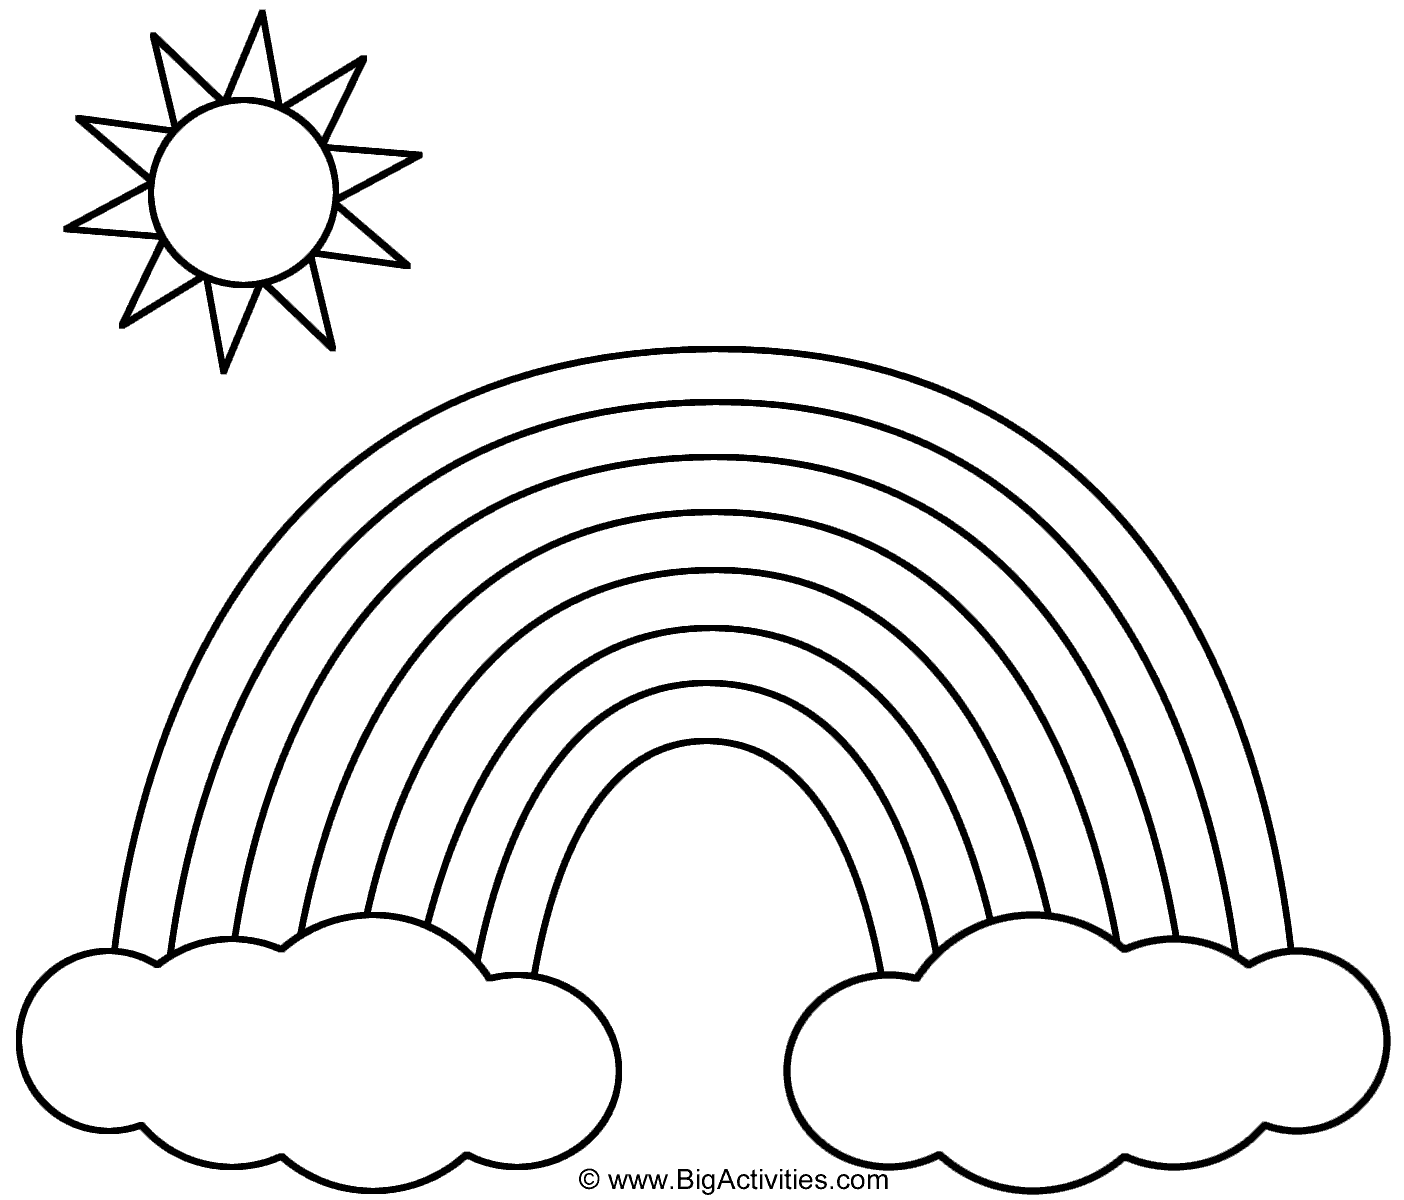 Coloring pages nature - Coloring Pages Nature 59